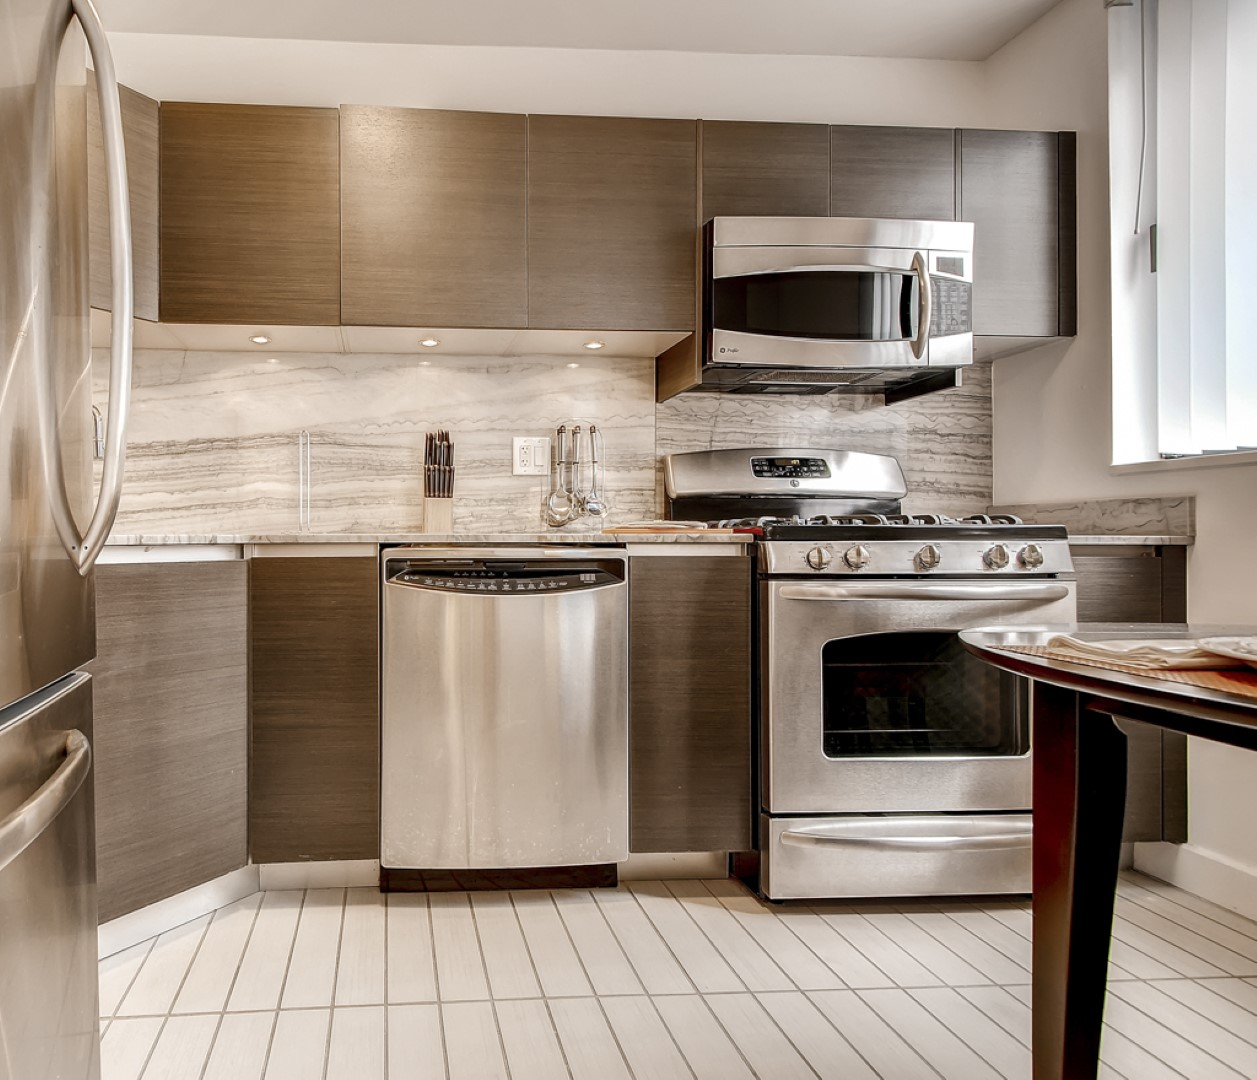 Kitchen at Ritz Plaza Apartments, Times Square, New York